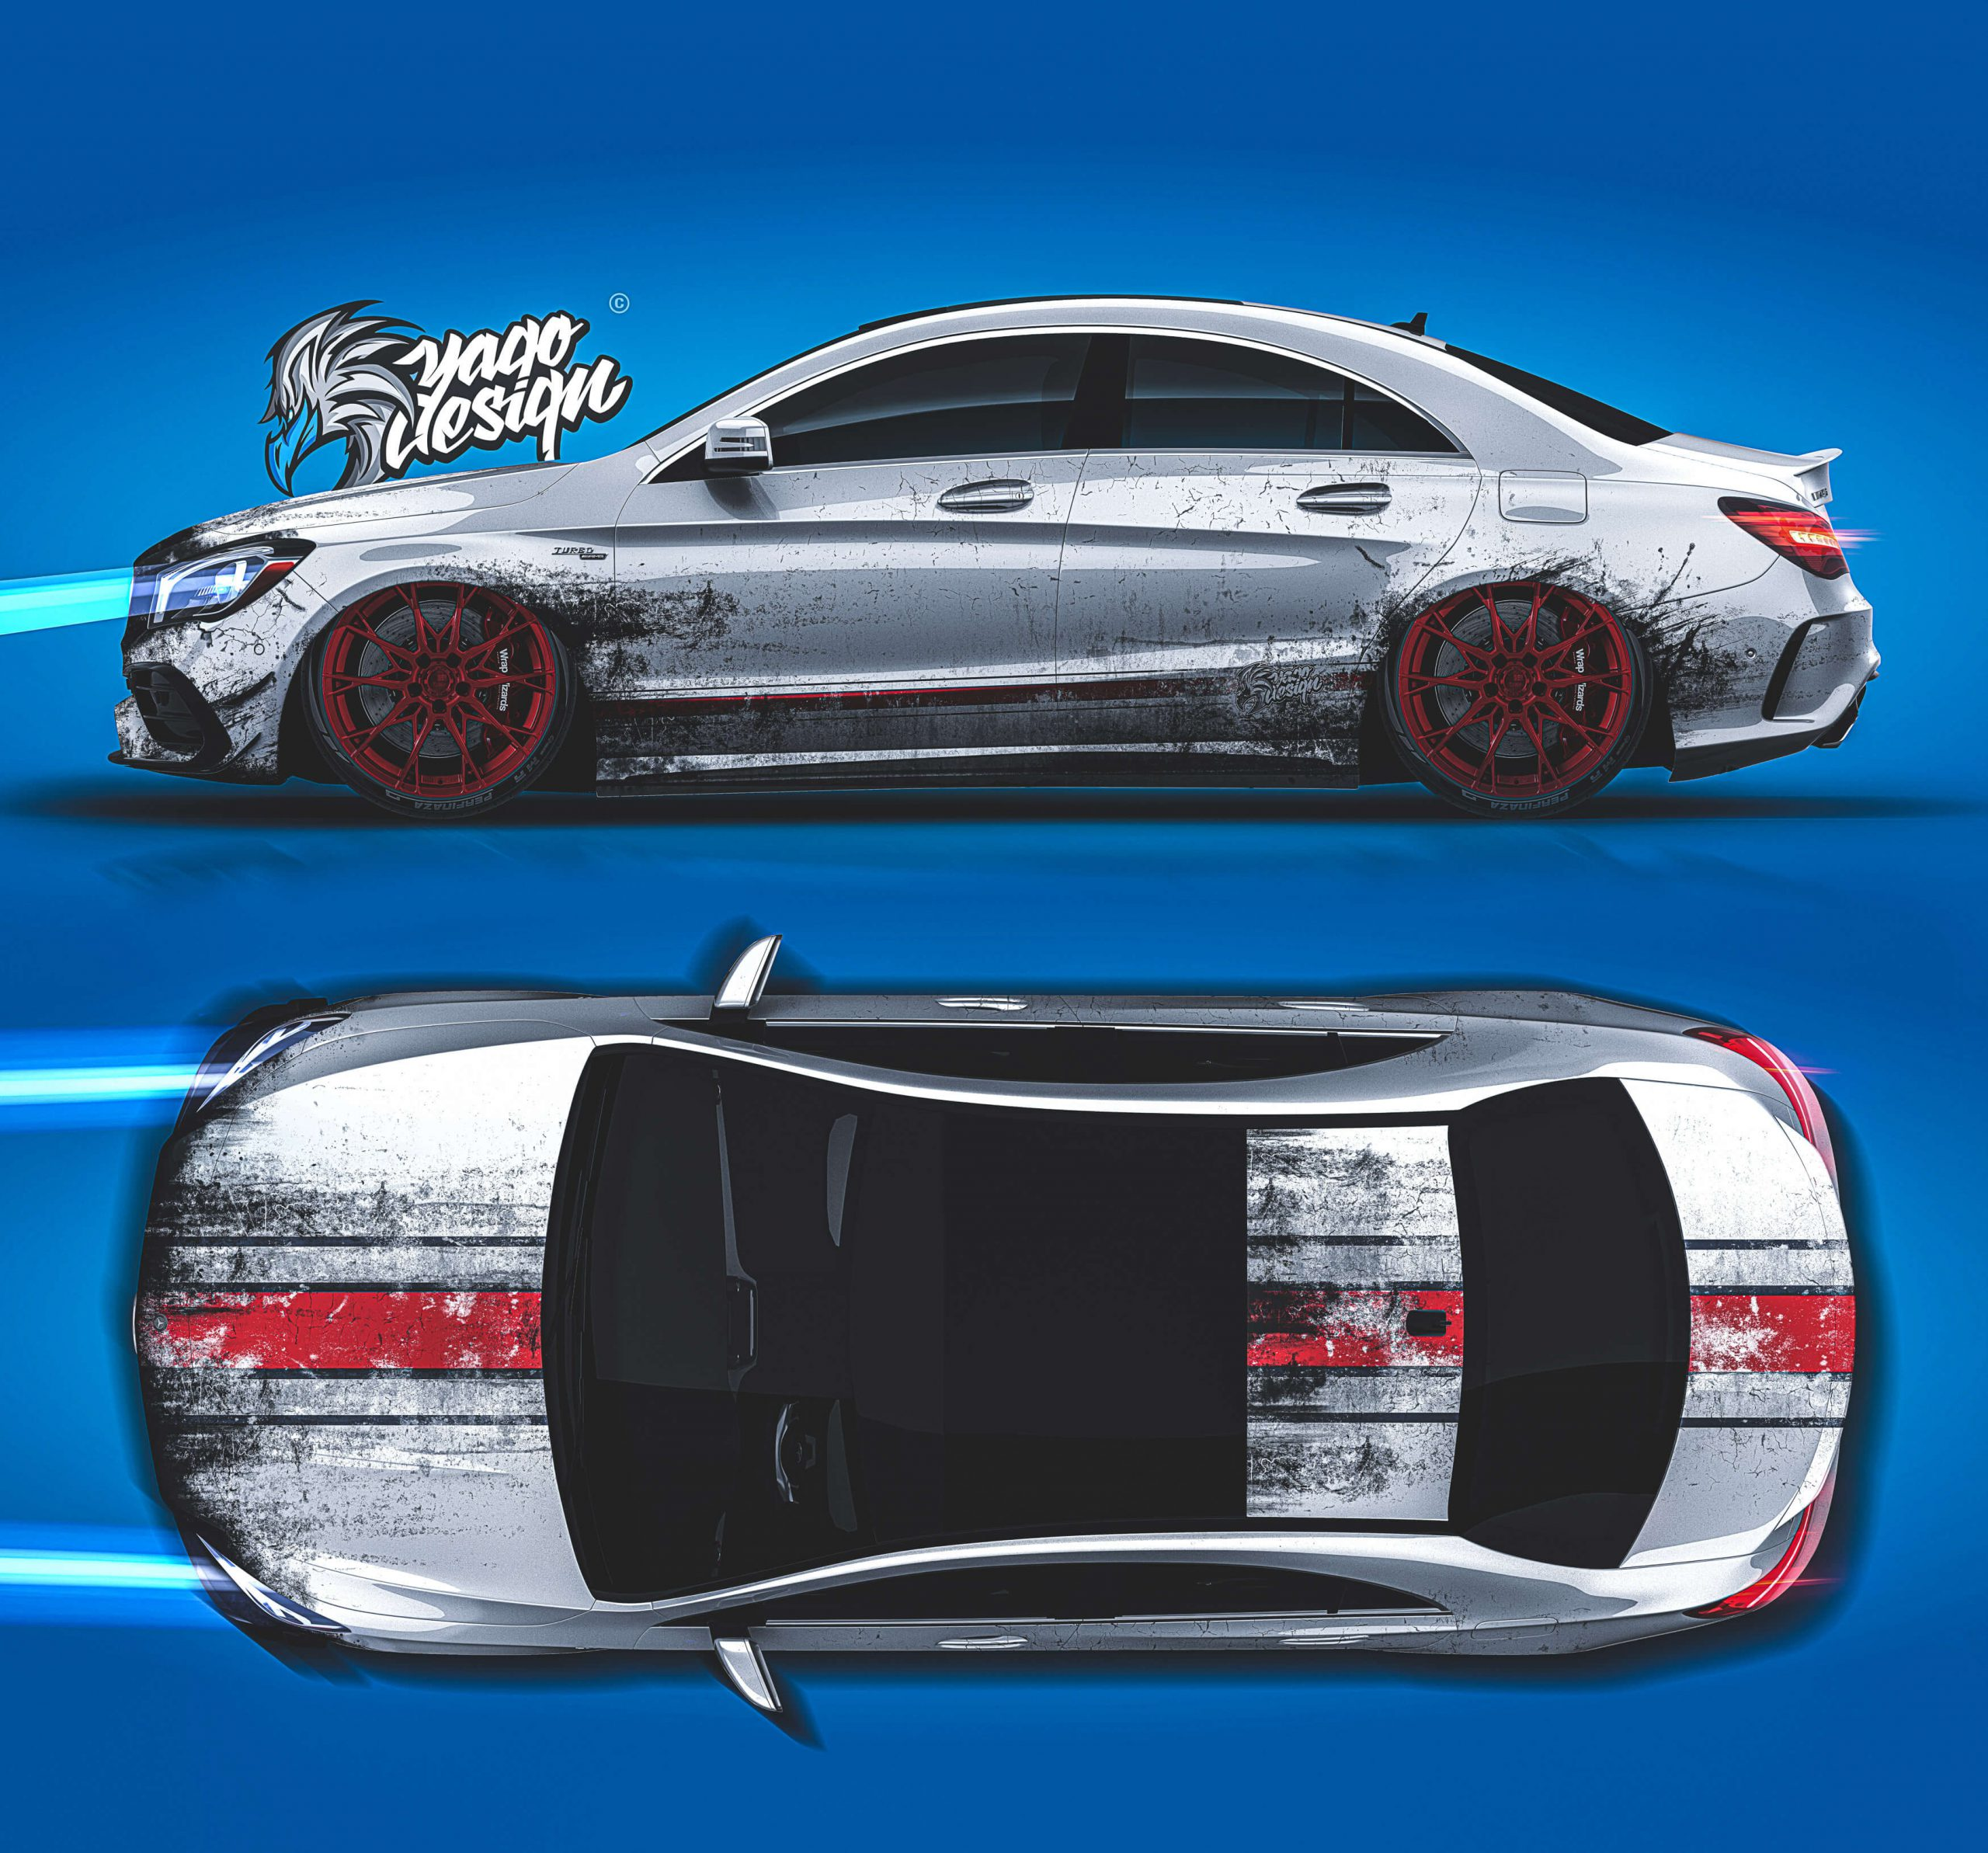 Mercedes-Benz-CLA45-AMG-by-Yagodesign-2019-3-scaled